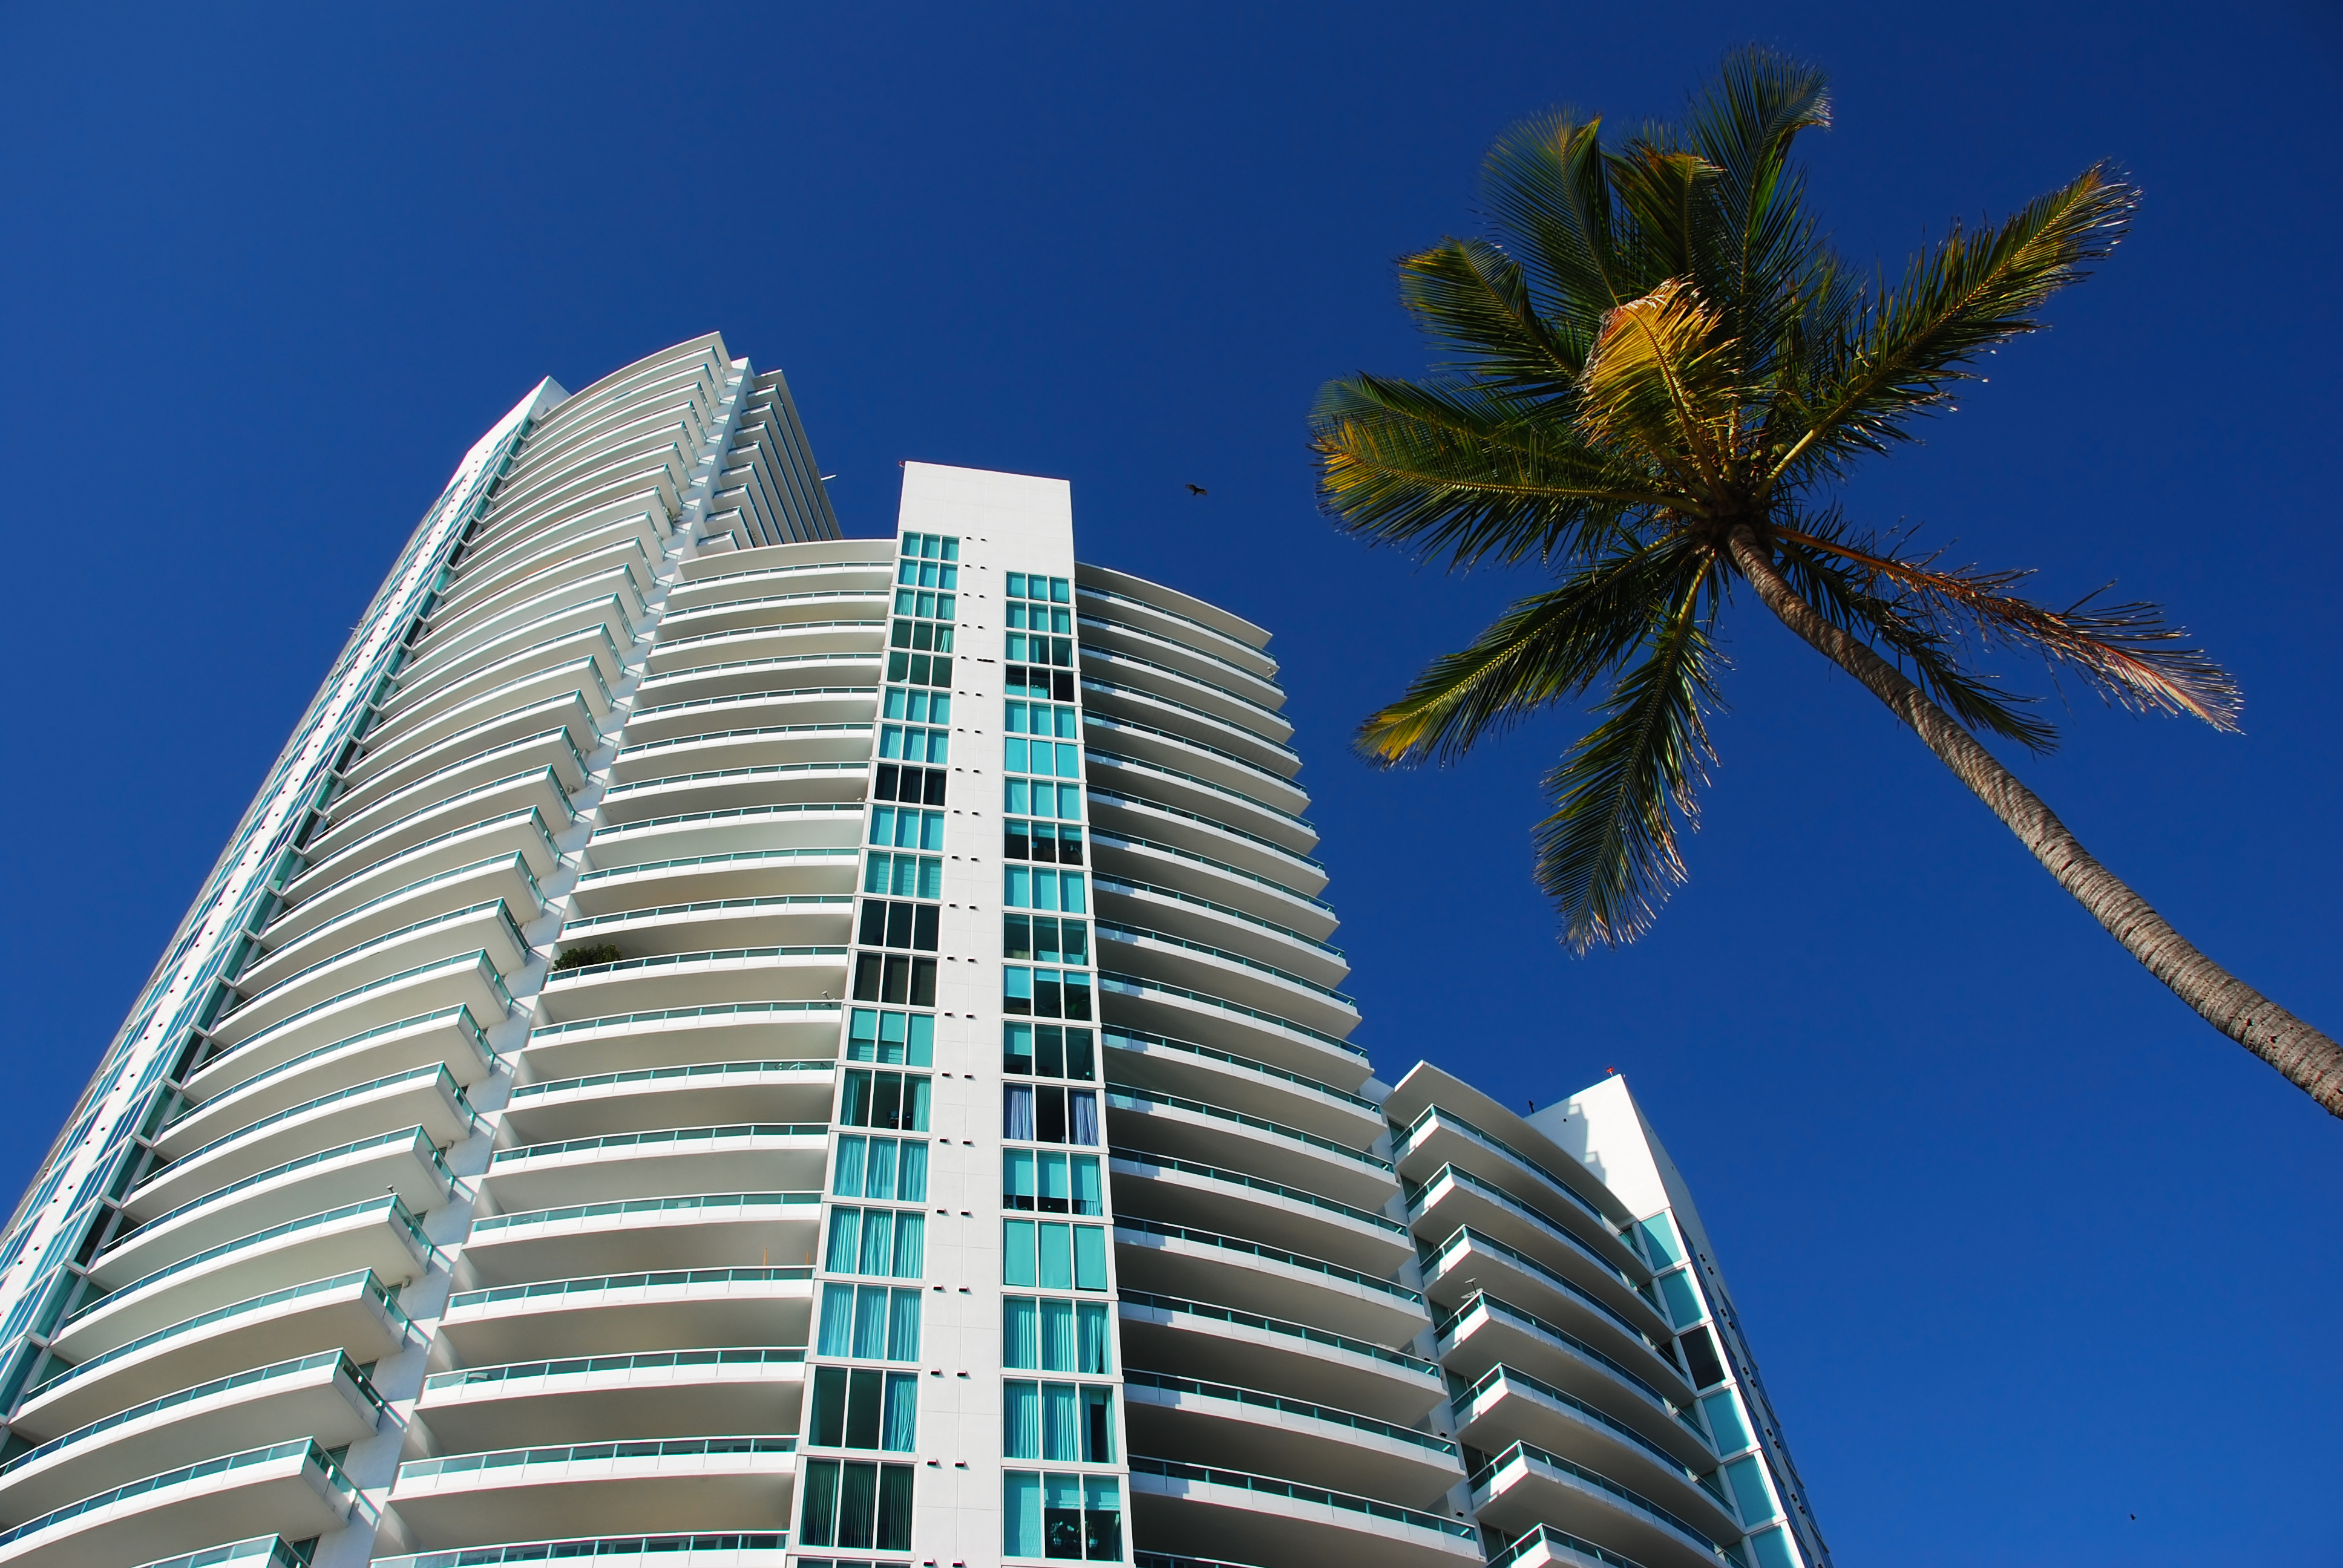 tall-condo-building-with-palm-tree